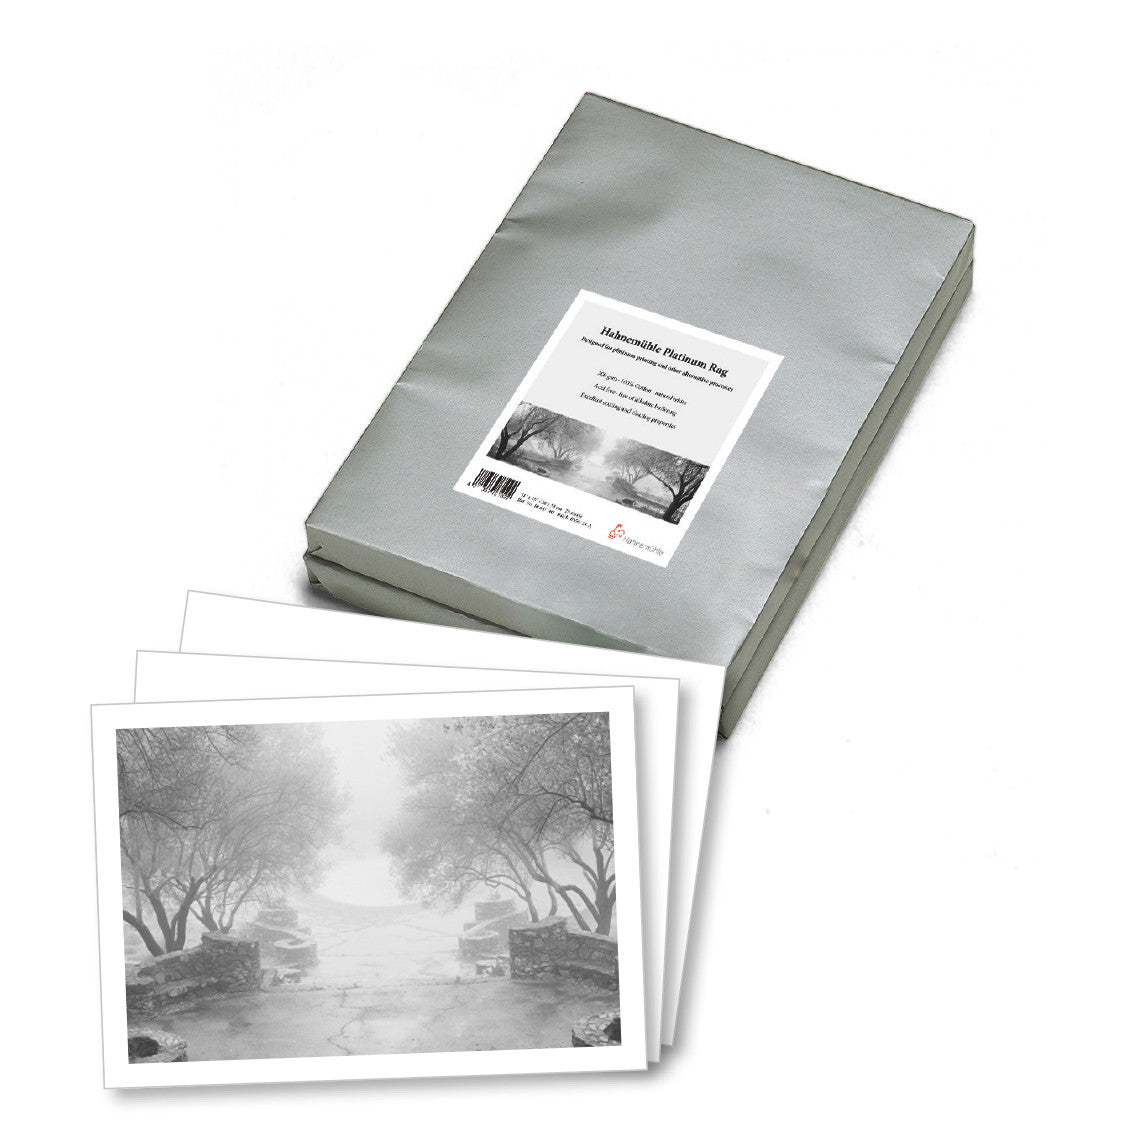 "Hahnemuhle Platinum Rag 300gsm 22""x30"", 25 sheets  (10647100) - Print-Scan-Present - Hahnemuhle - Helix Camera"